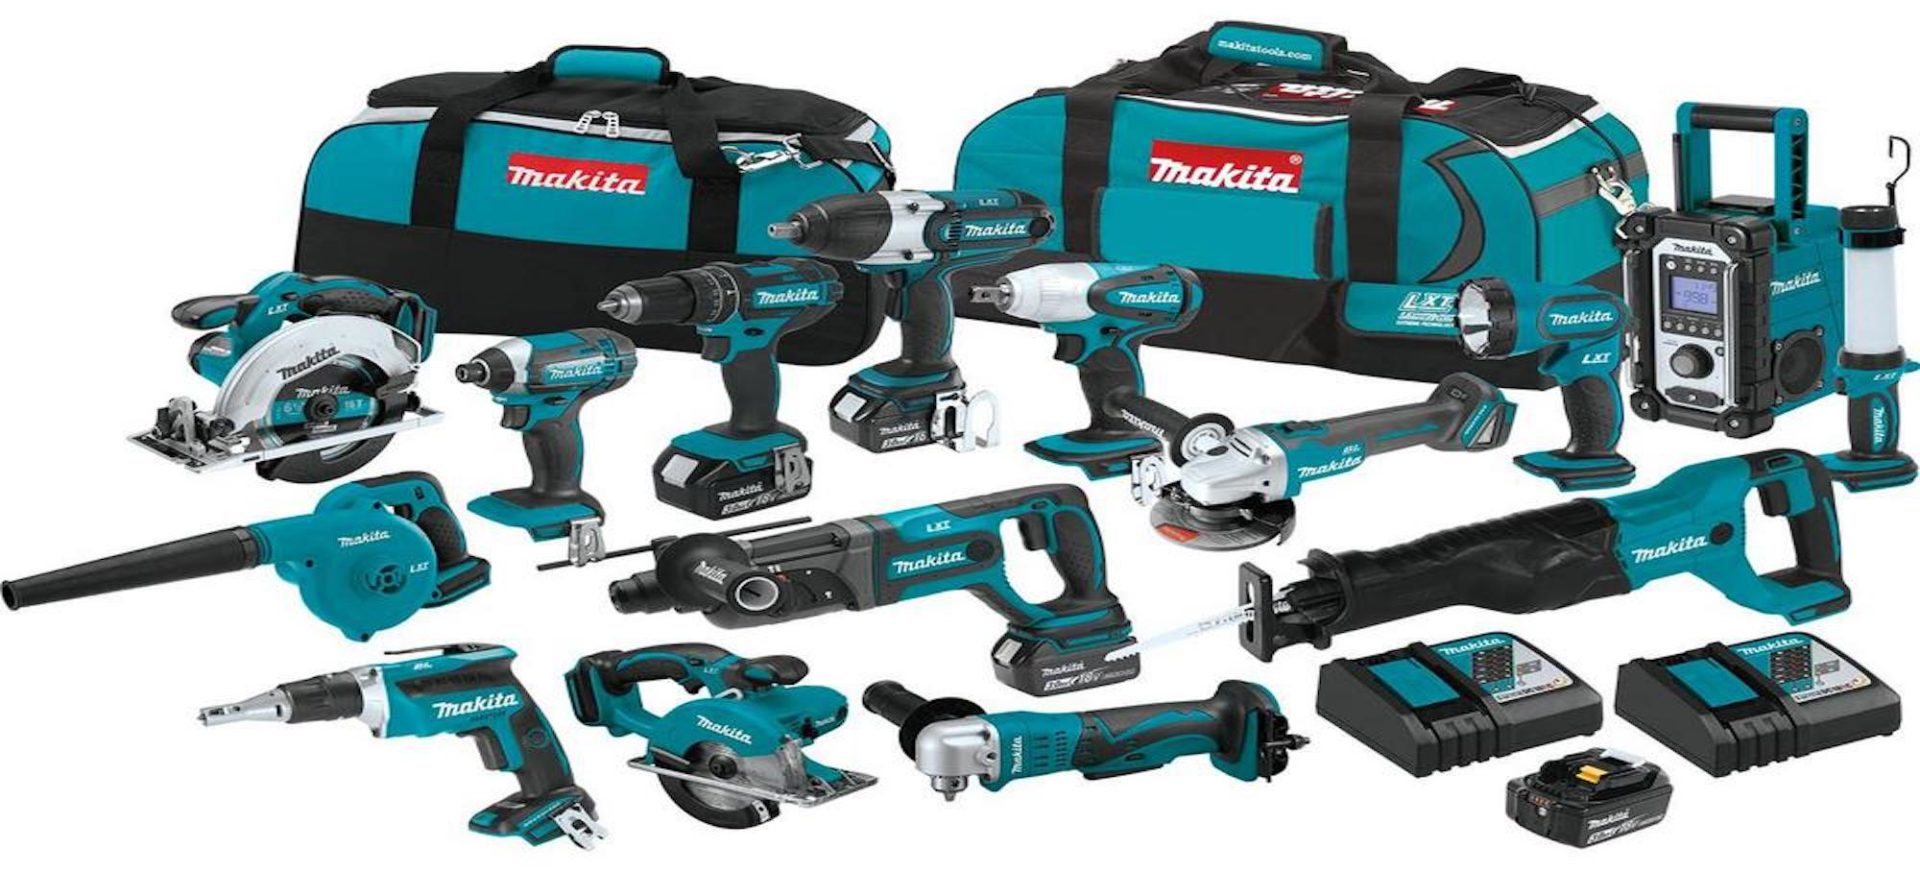 makita-power-tool-combo-kits-xt1501-64_1000